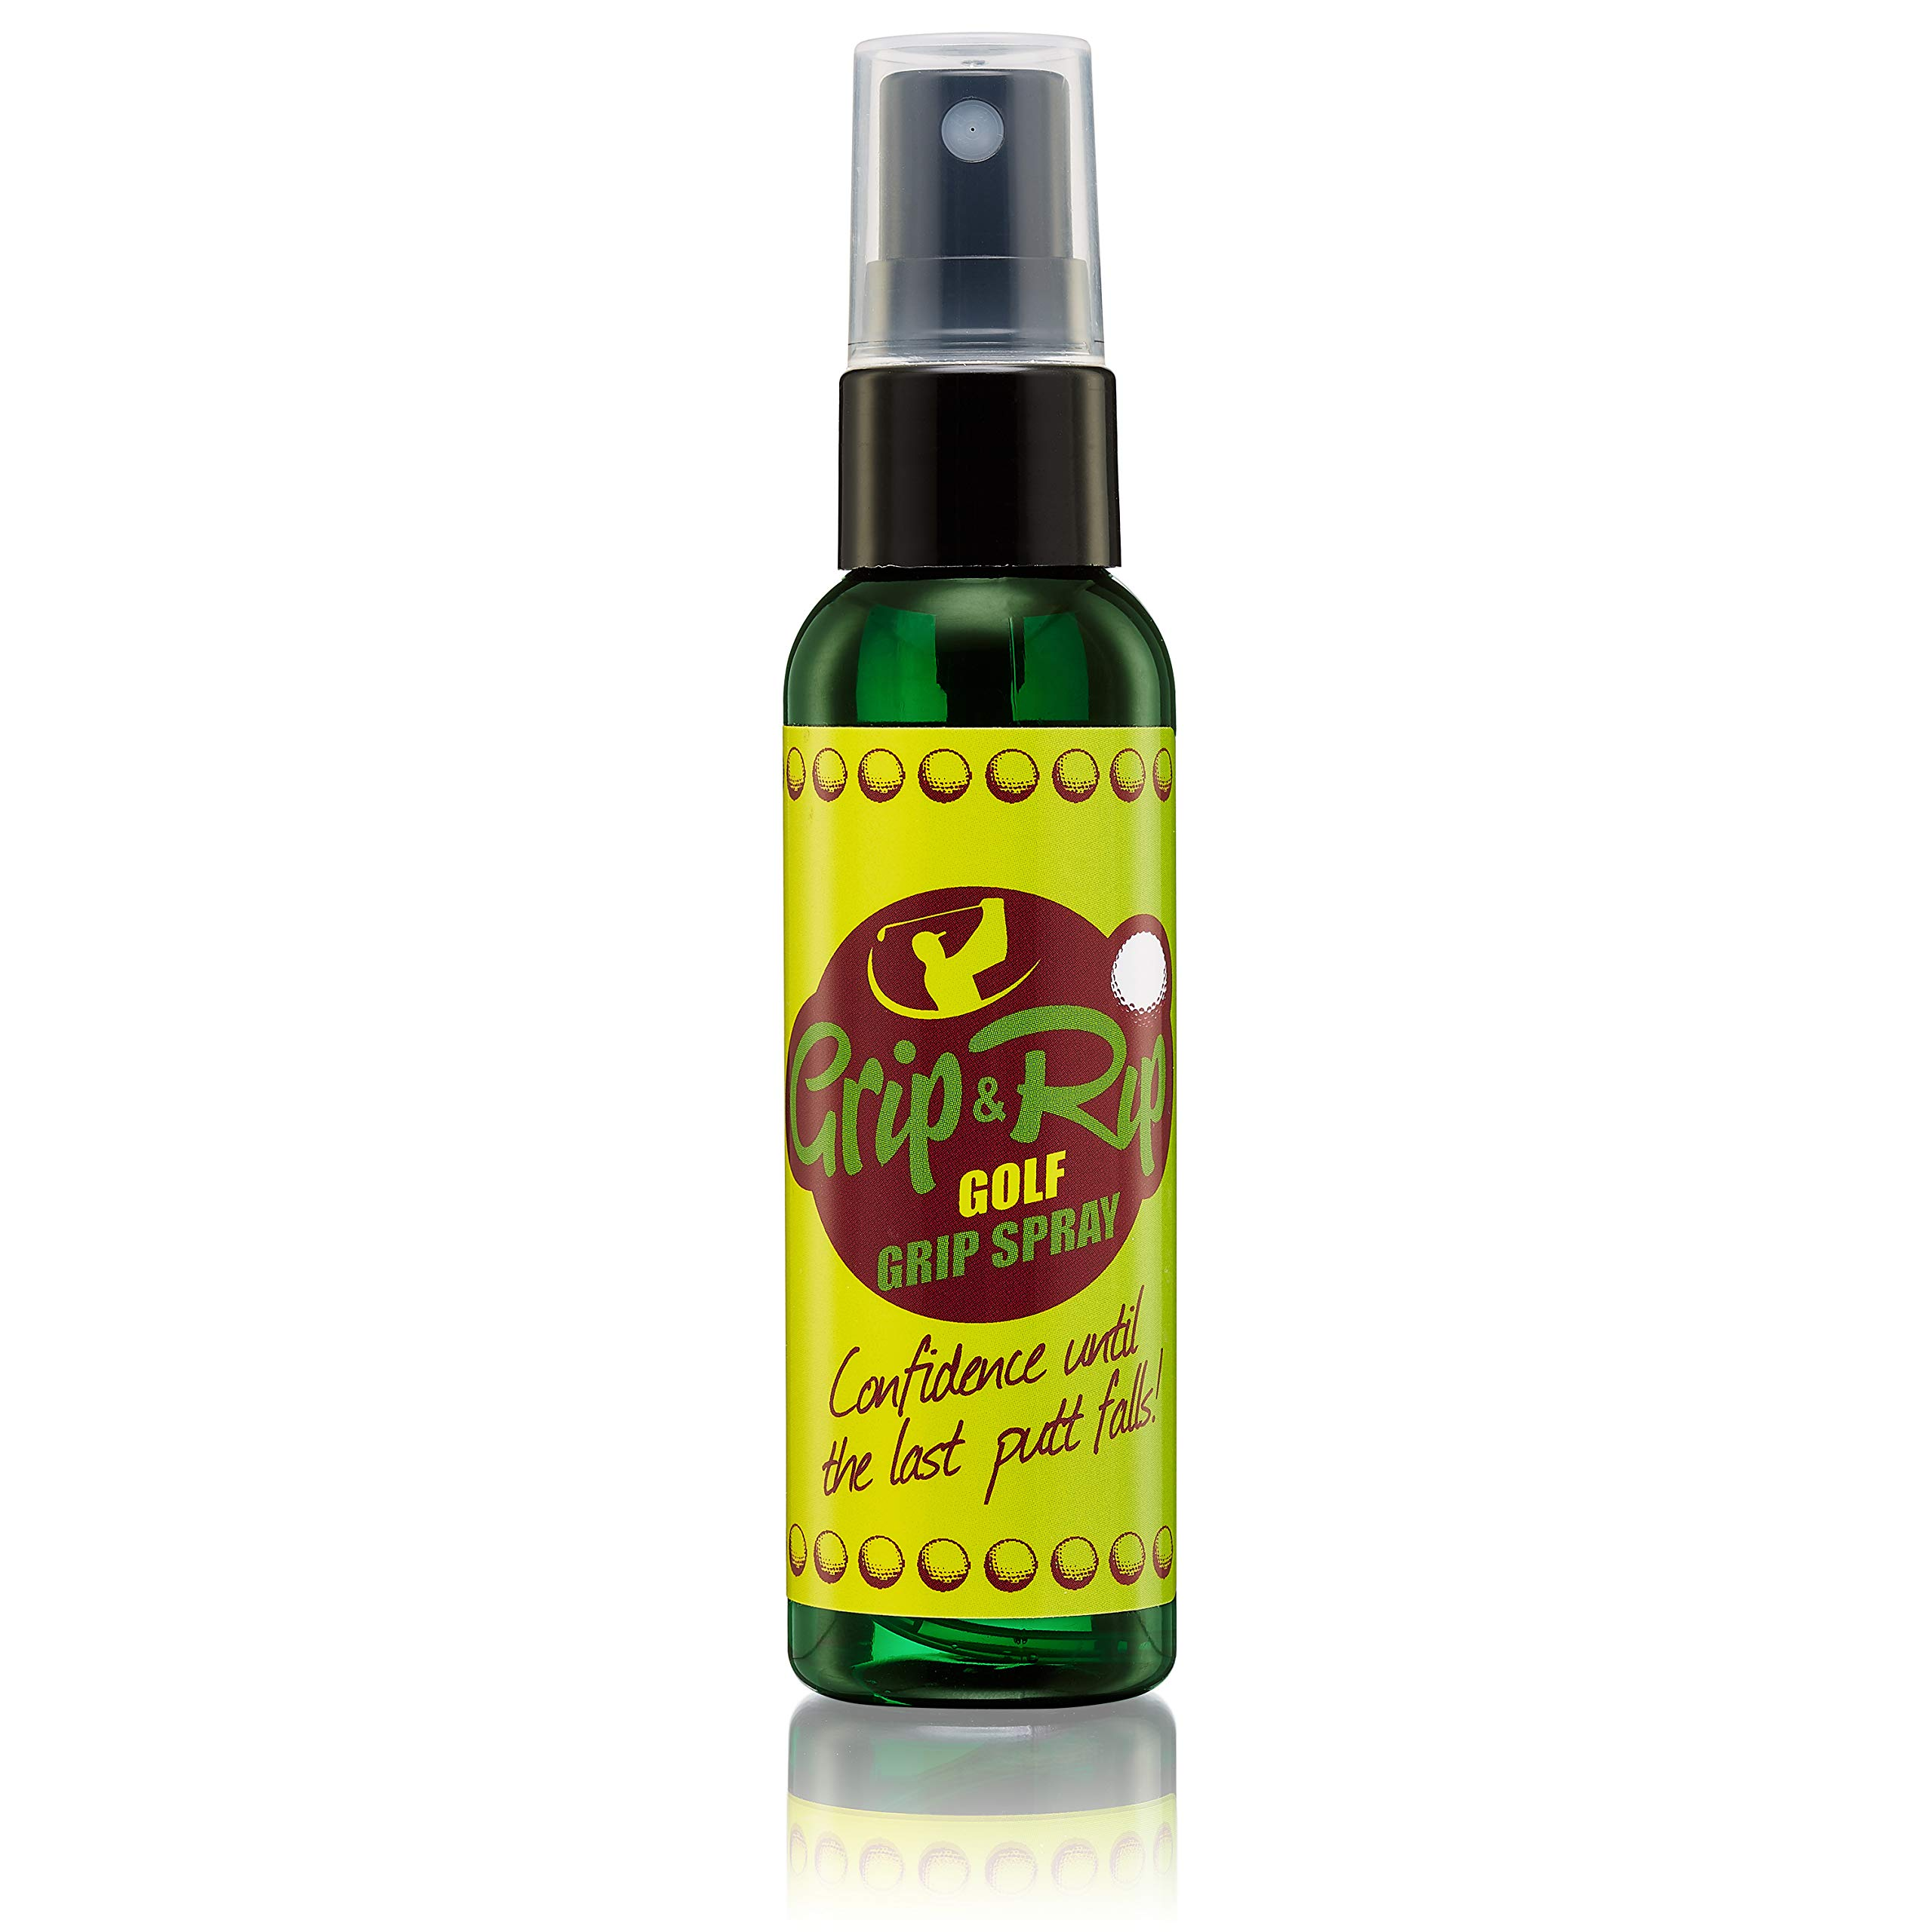 Grip & Rip Golf Club Gripping Sports Spray | Better Grip in All Weather Conditions - Sweat | All Natural Pine Rosin, Organic Aloe, Tea Tree Oil 2 oz